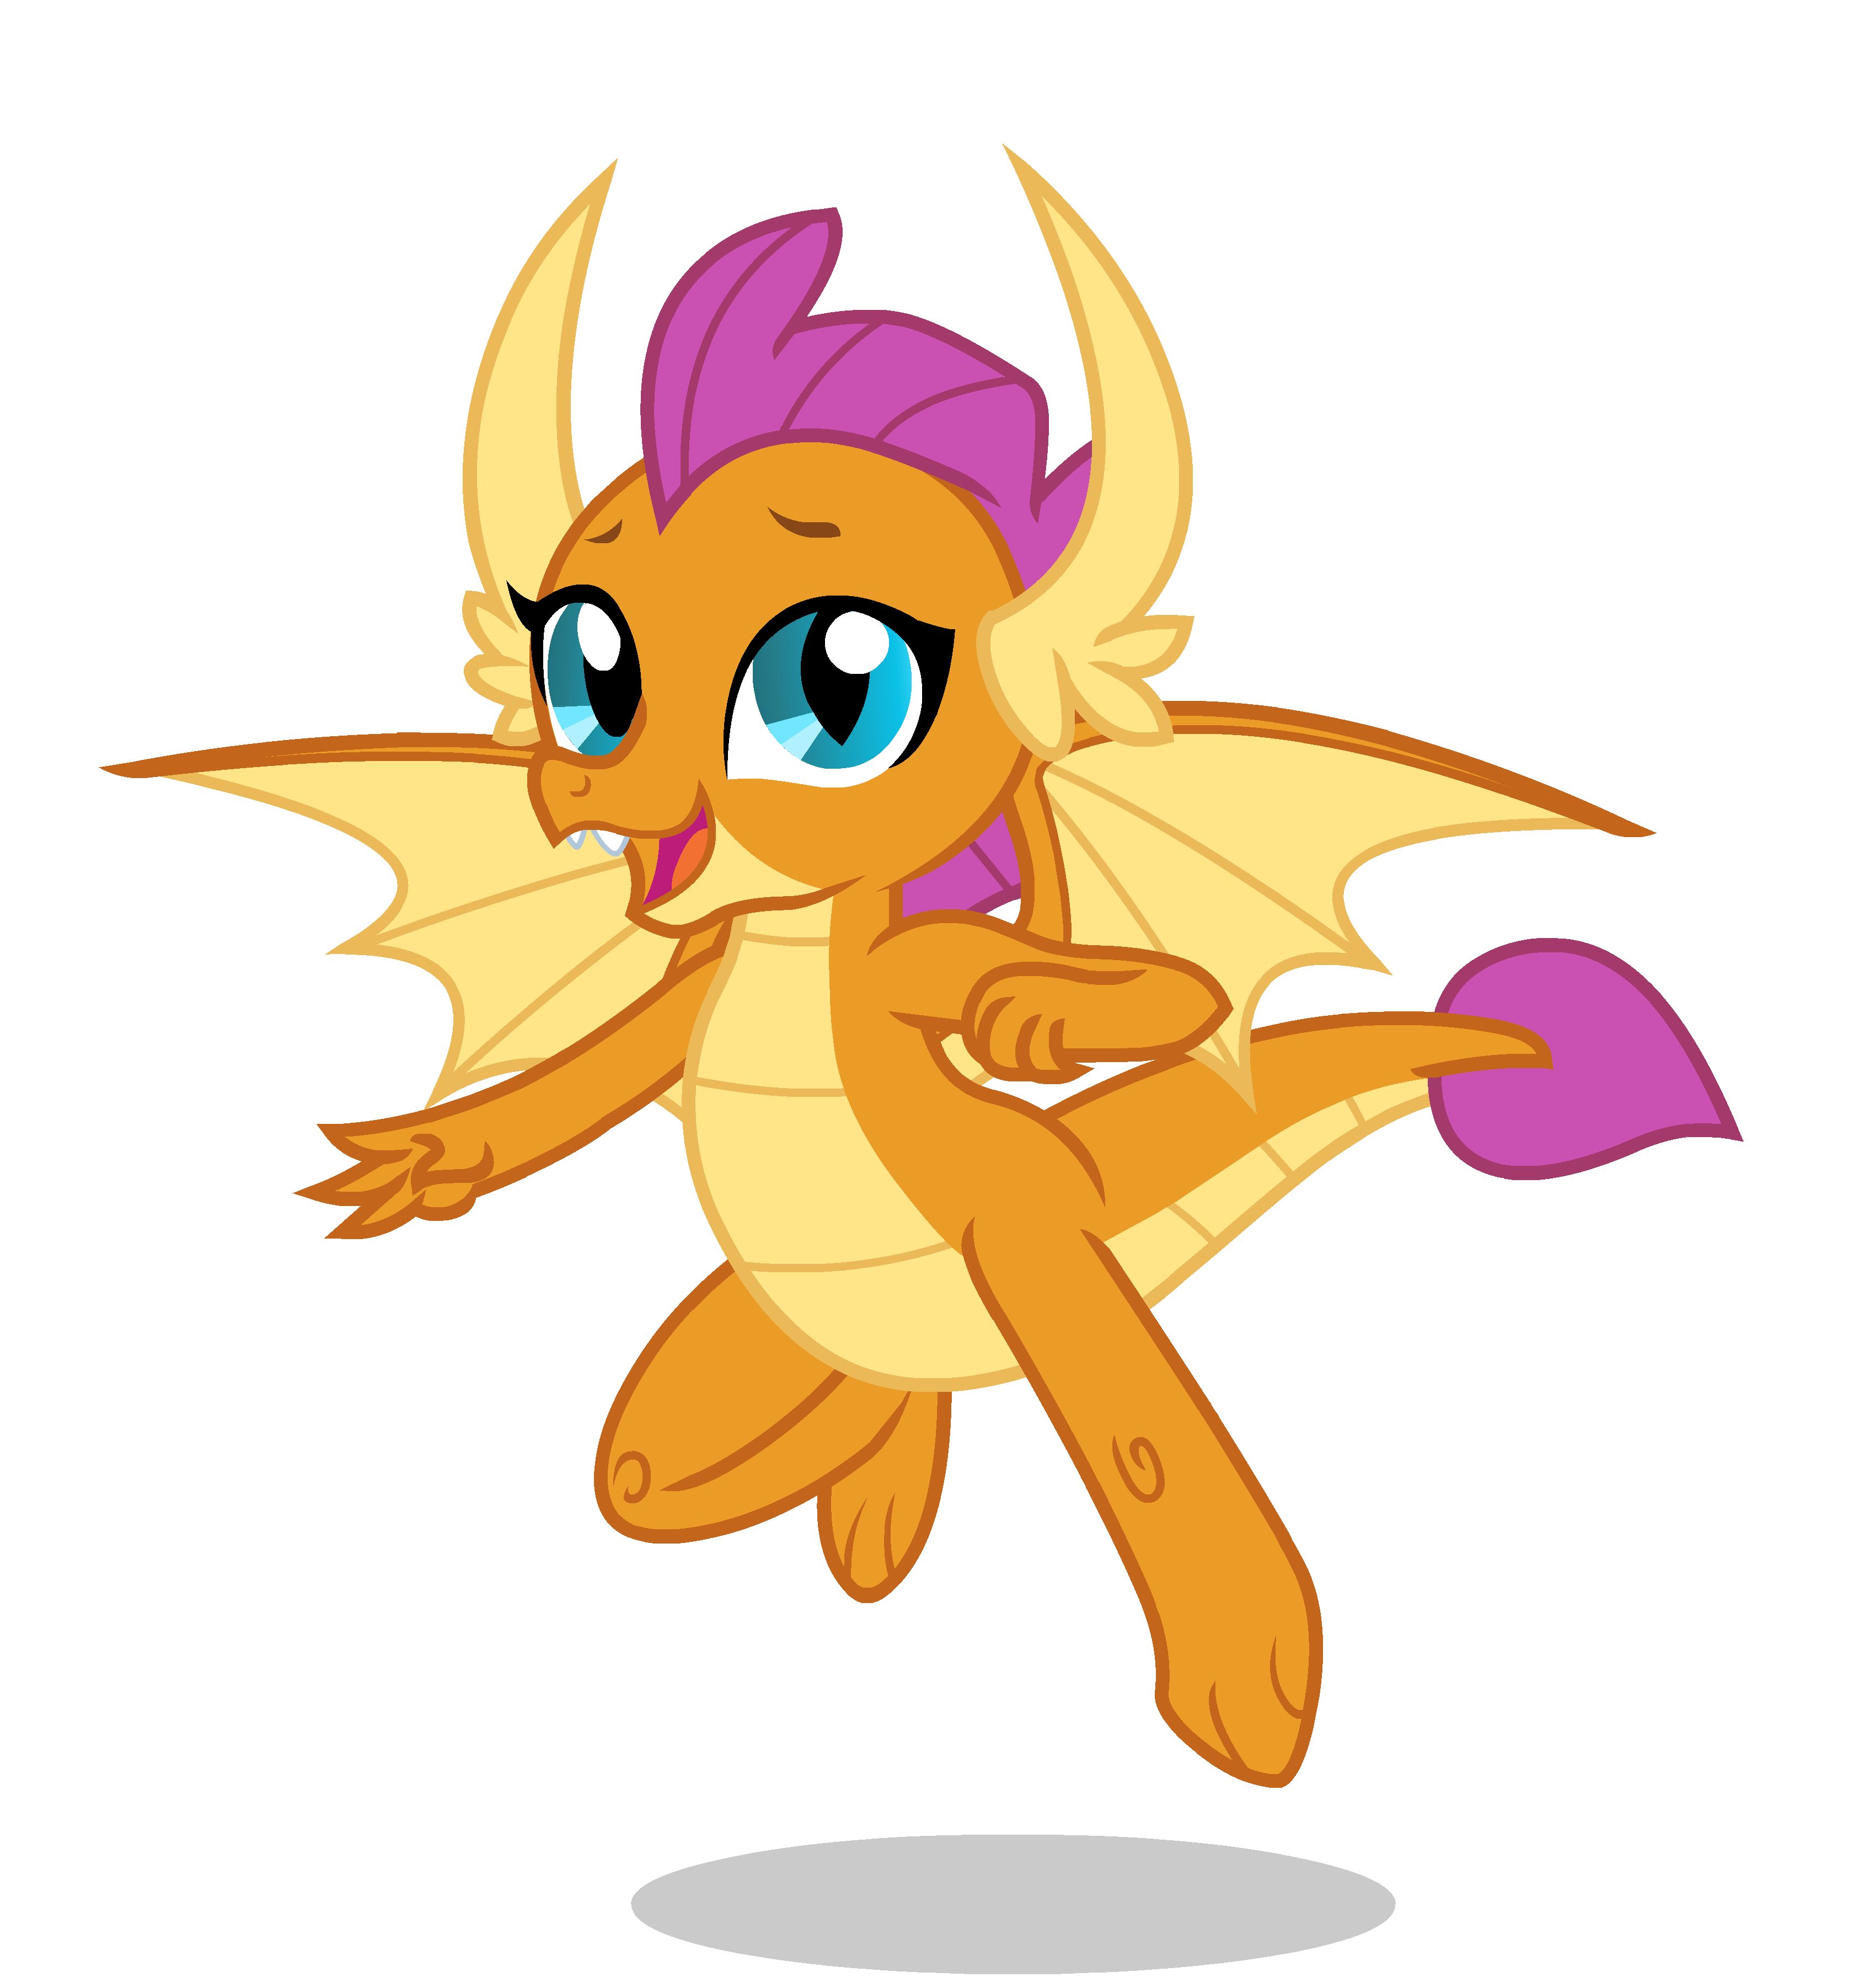 Fanart S Already There Apparently My Little Pony Friendship Is Magic Little Pony My Little Pony Old My Little Pony